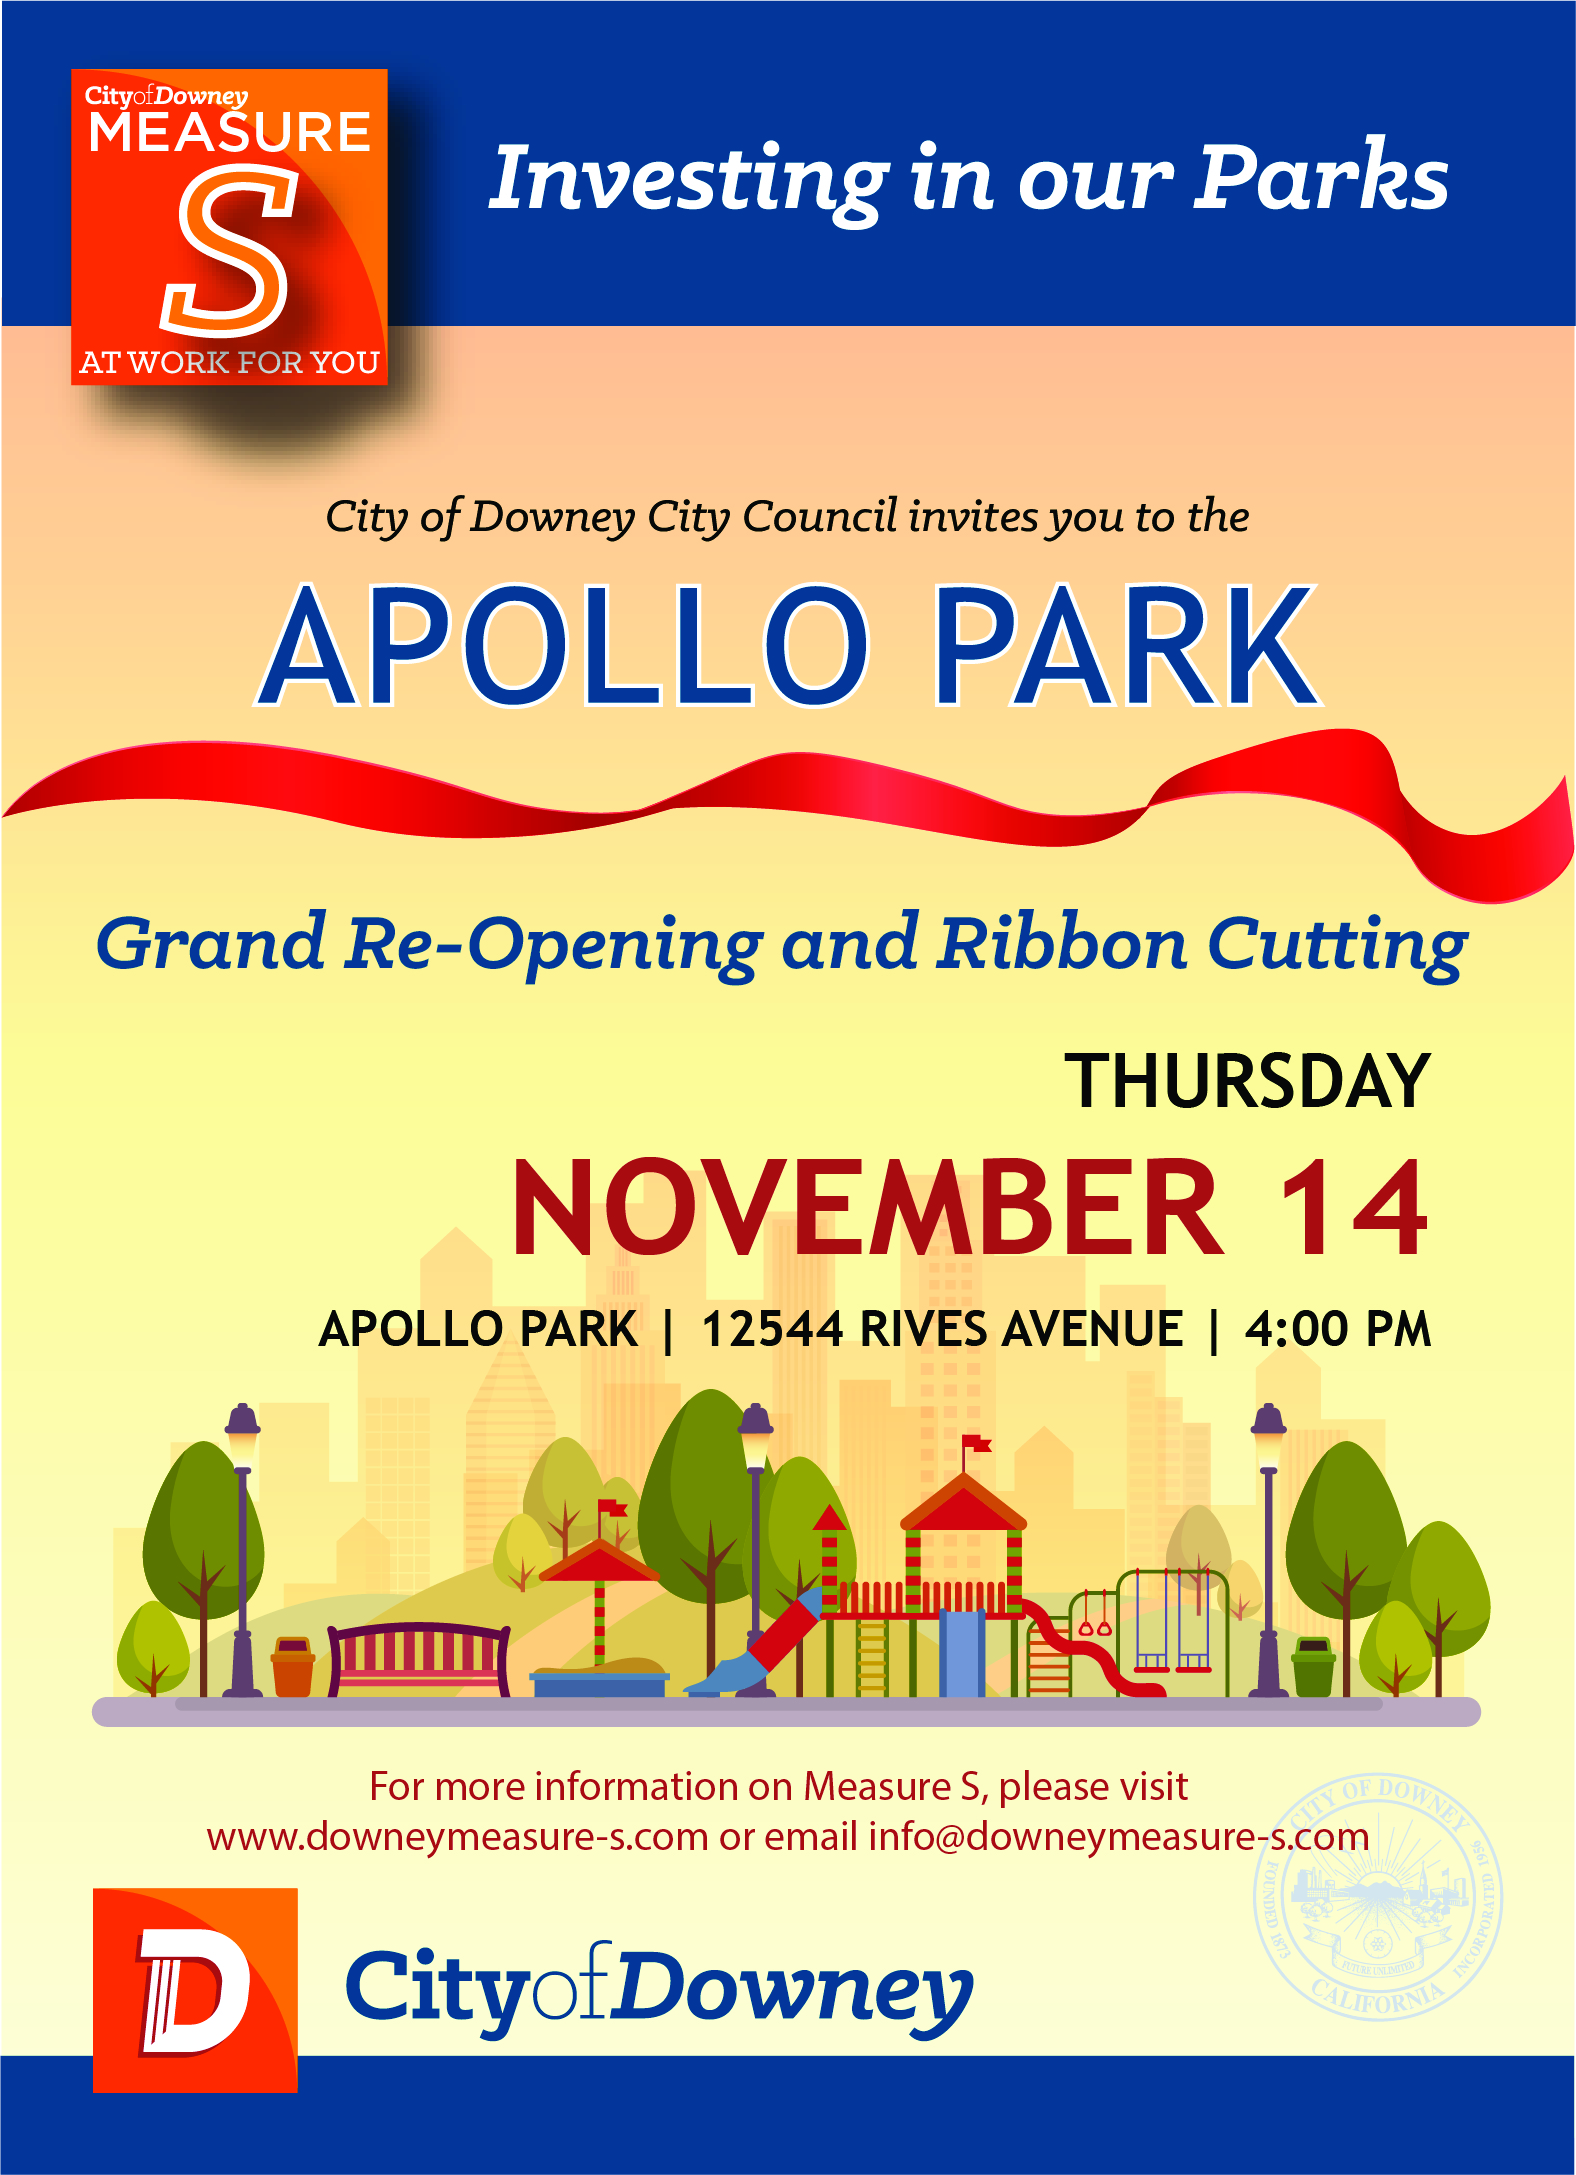 Apollo Park Gran Re -Opening and Ribbon Cutting Ceremony